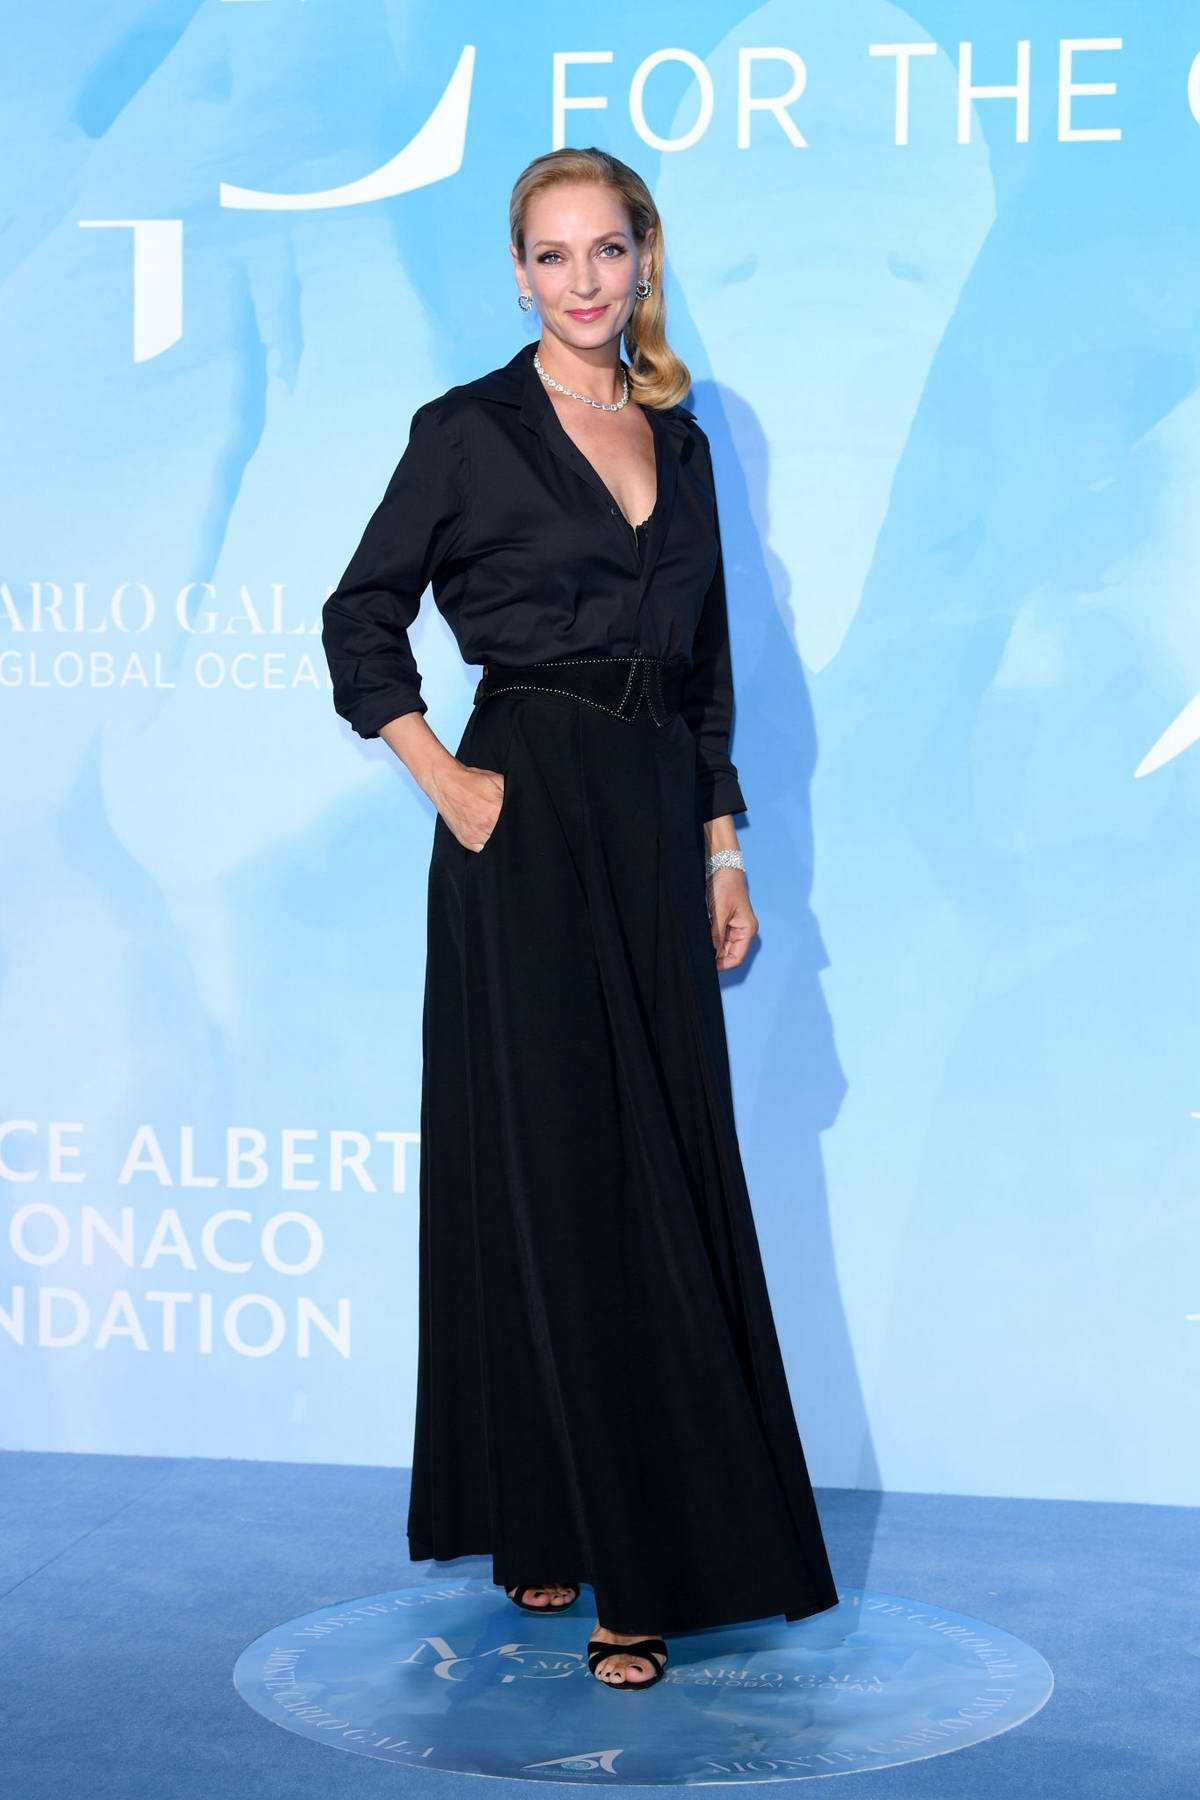 Uma Thurman attends the Gala for the Global Ocean in Monte Carlo, Monaco